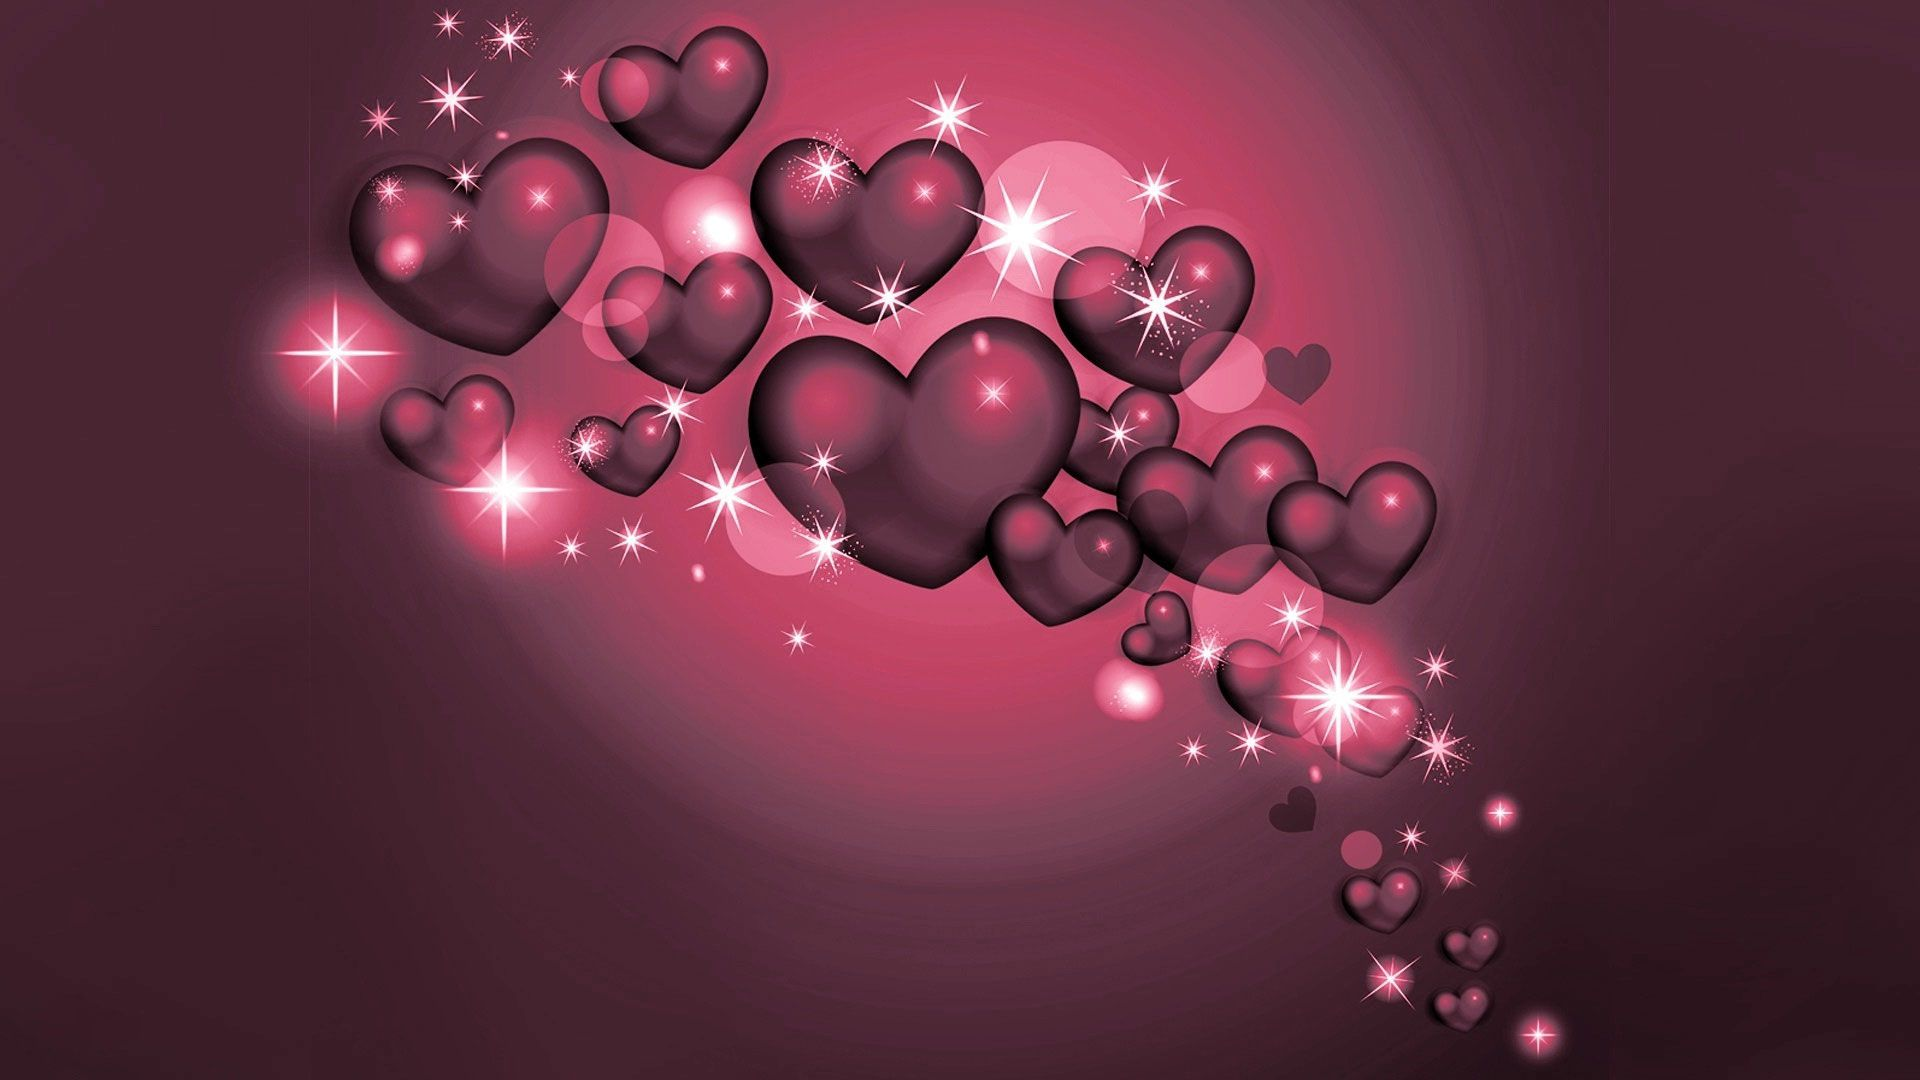 Cute Love Wallpapers Top Free Cute Love Backgrounds